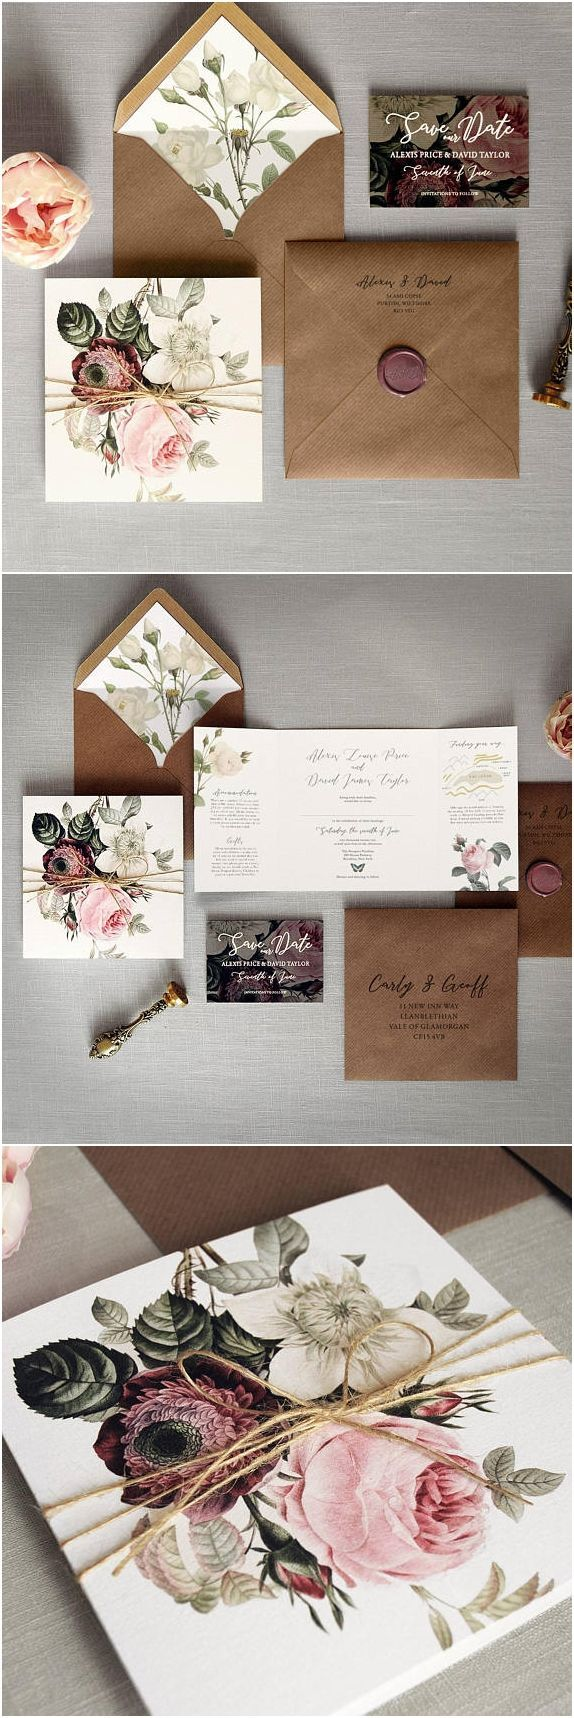 English Garden Luxury Folding Wedding Invitations Save The Date Rustic Twine Woodland